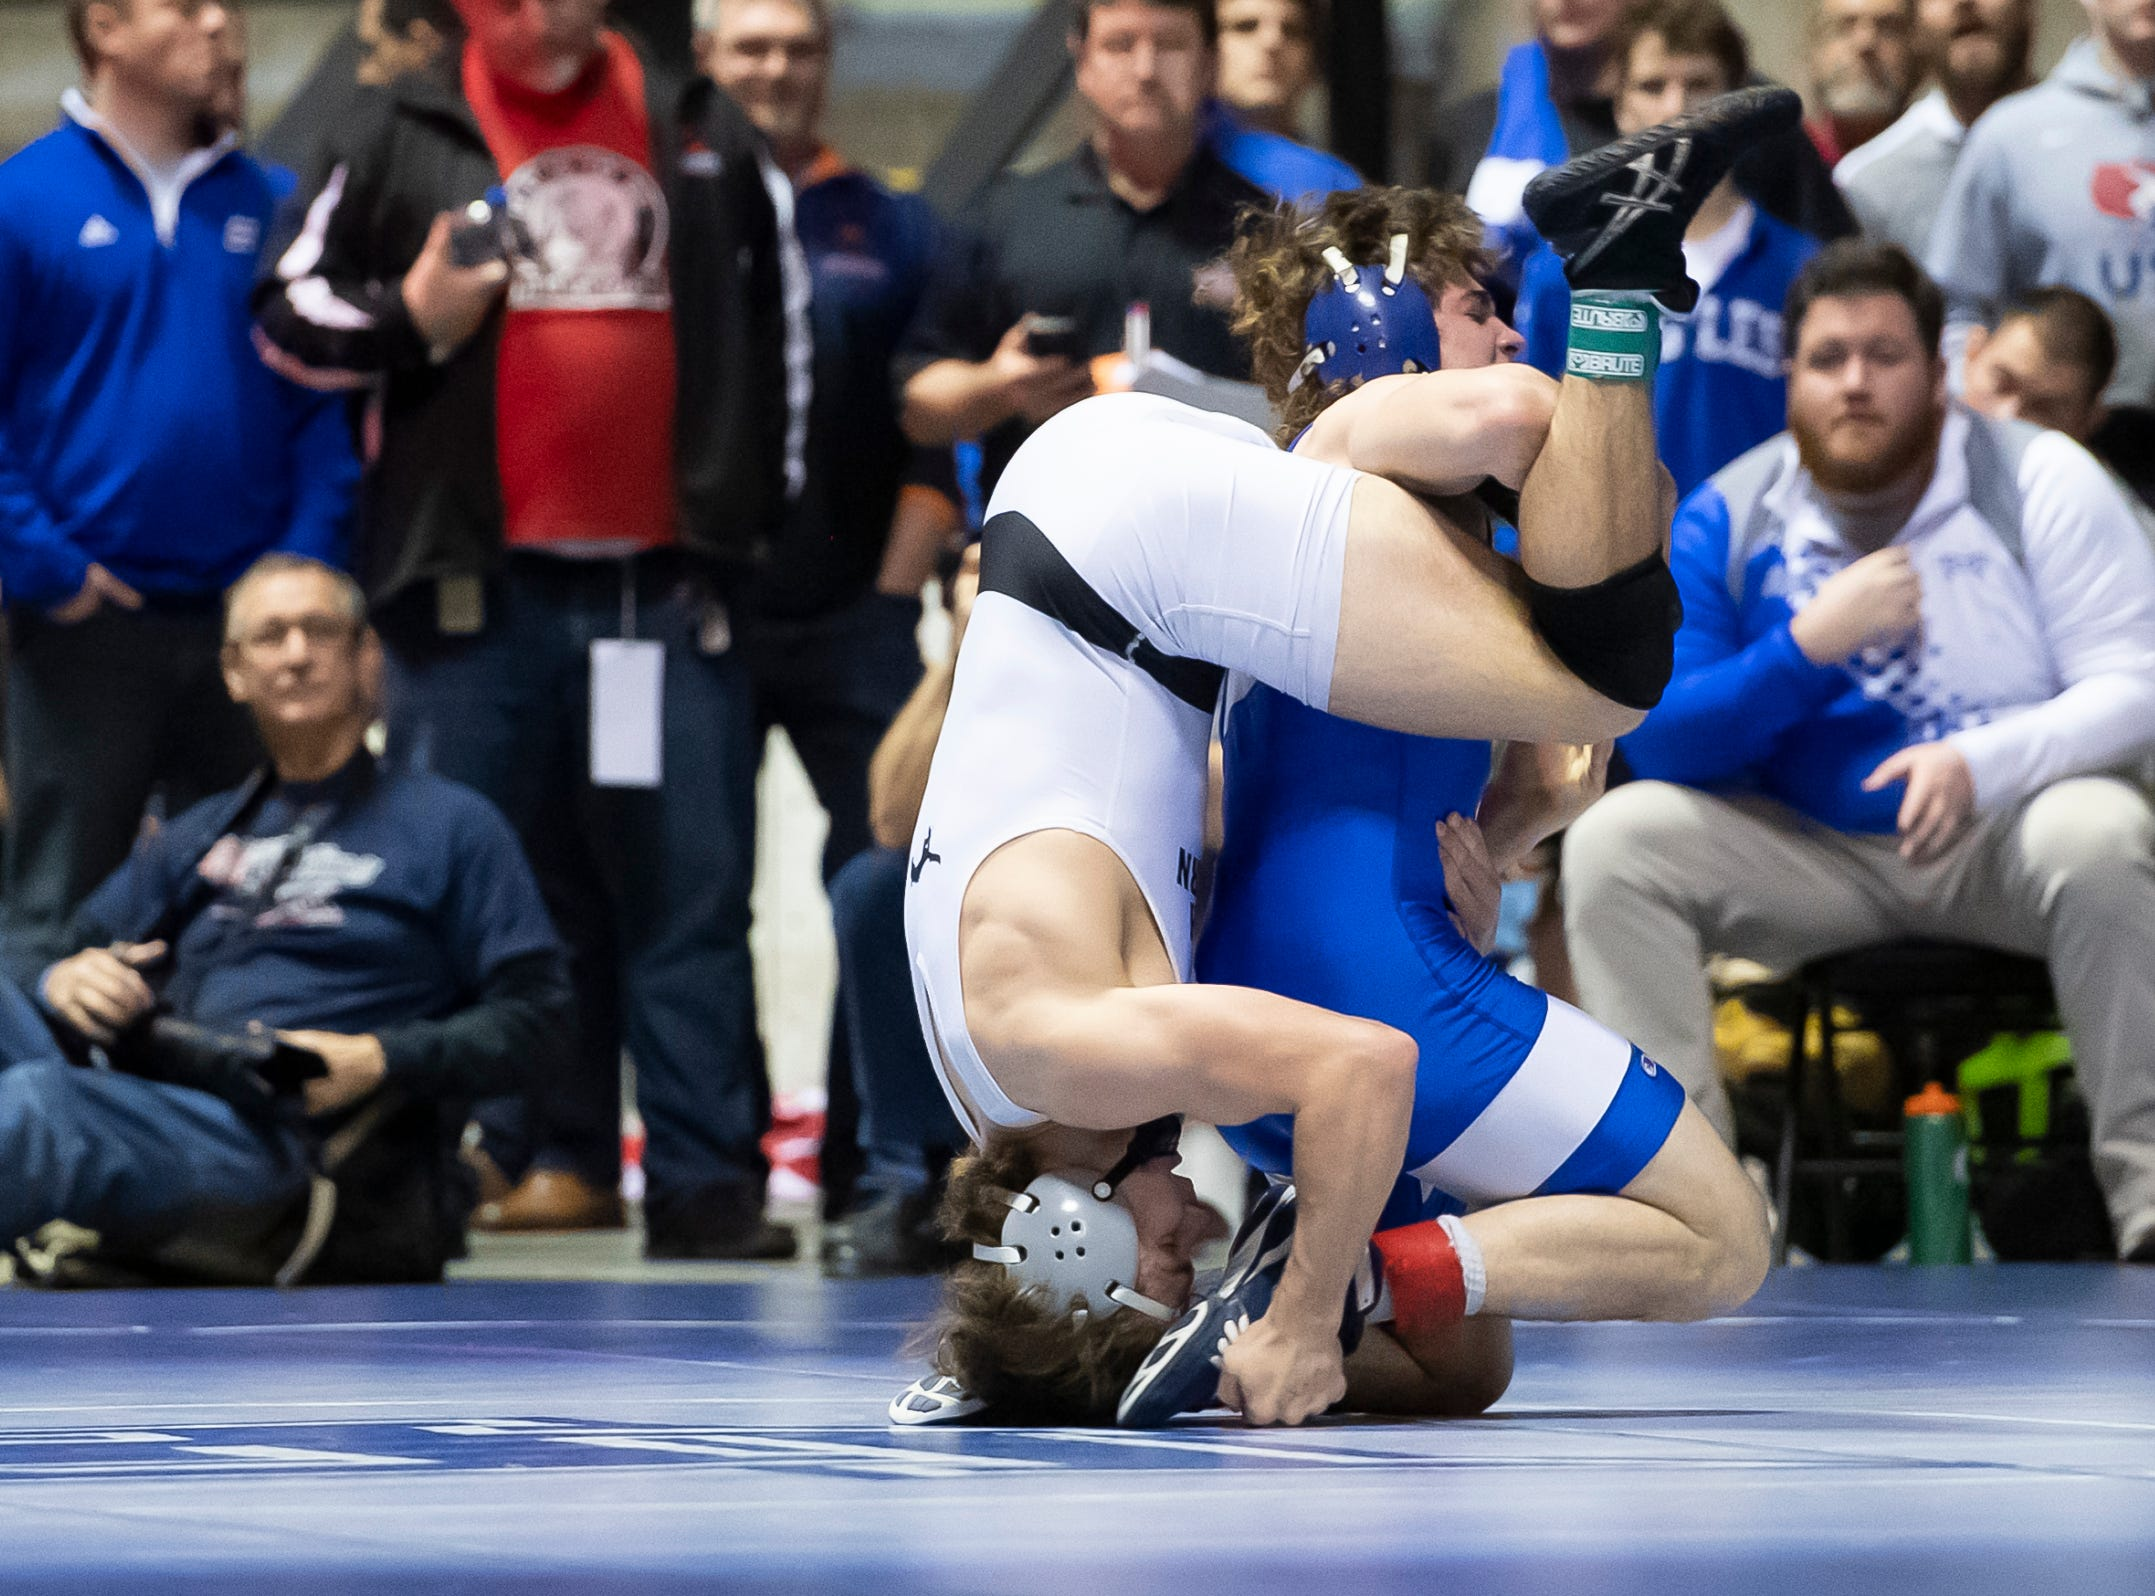 South Western's Ethan Baney, left, wrestles Lower Dauphin's Clayton Ulrey during a 160-pound semifinal bout at the District 3 wrestling championships at Hersheypark Arena Saturday, February 23, 2019. Ulrey won by major decision 17-7.